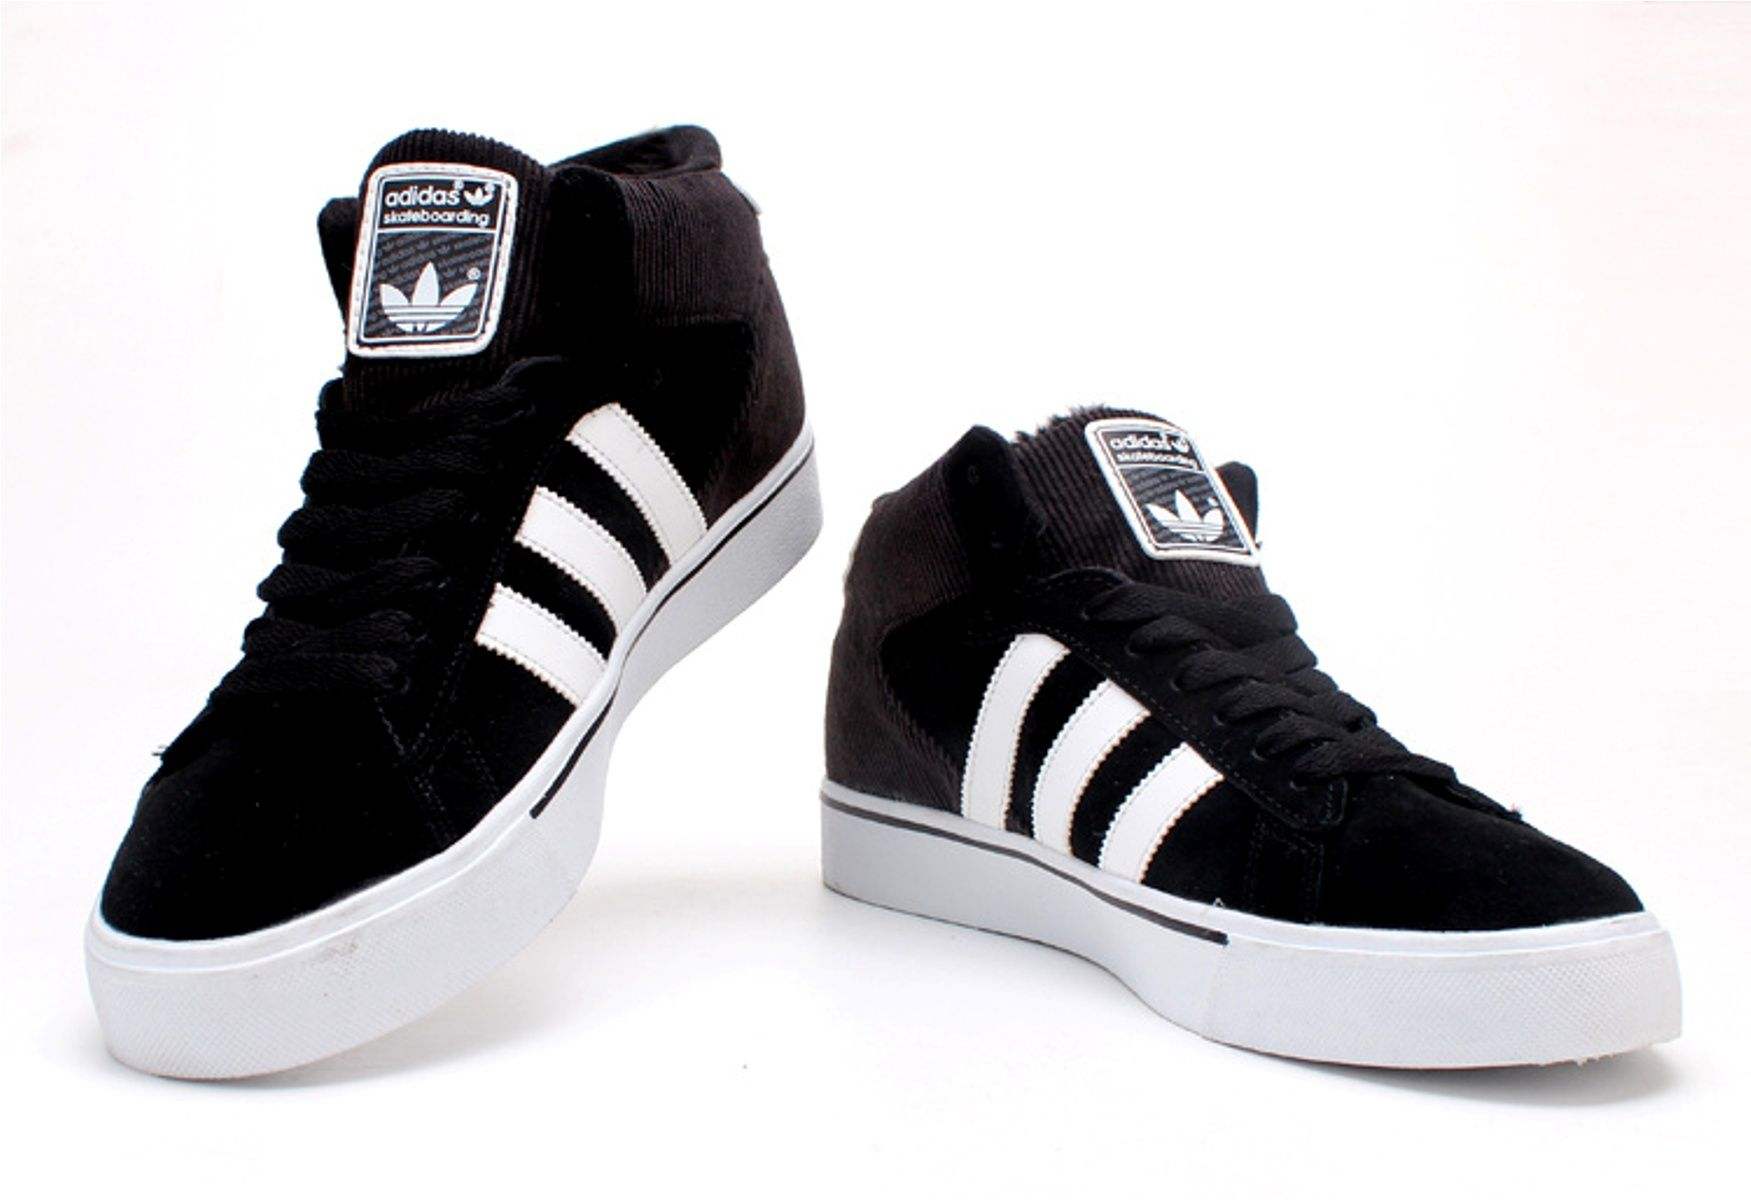 Adidas Sneakers Adidas Originals Shoes Trend Pictures 2014 Adidas